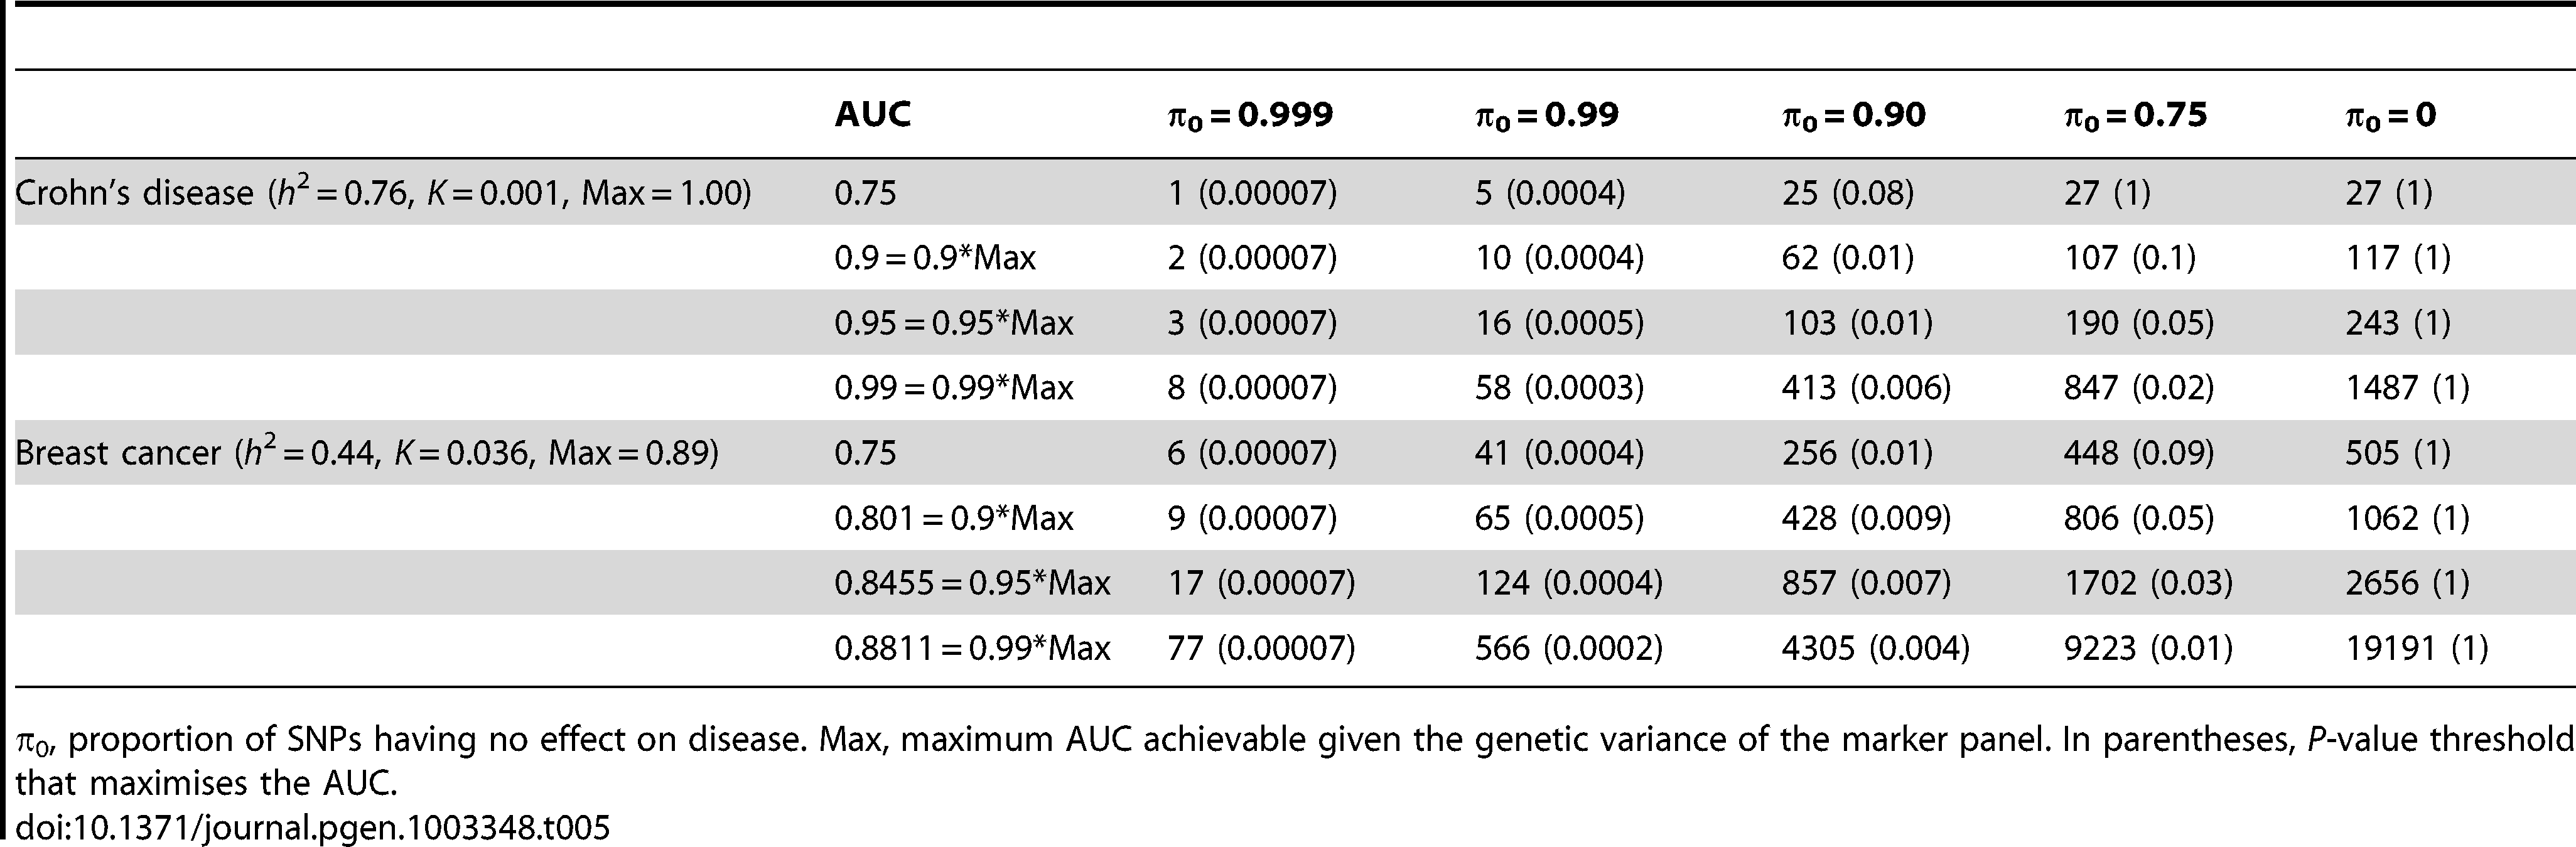 Numbers of cases and controls (in 1000s of each, rounded up) required to attain a specified AUC using a panel of 1,000,000 markers that explains the full heritability.